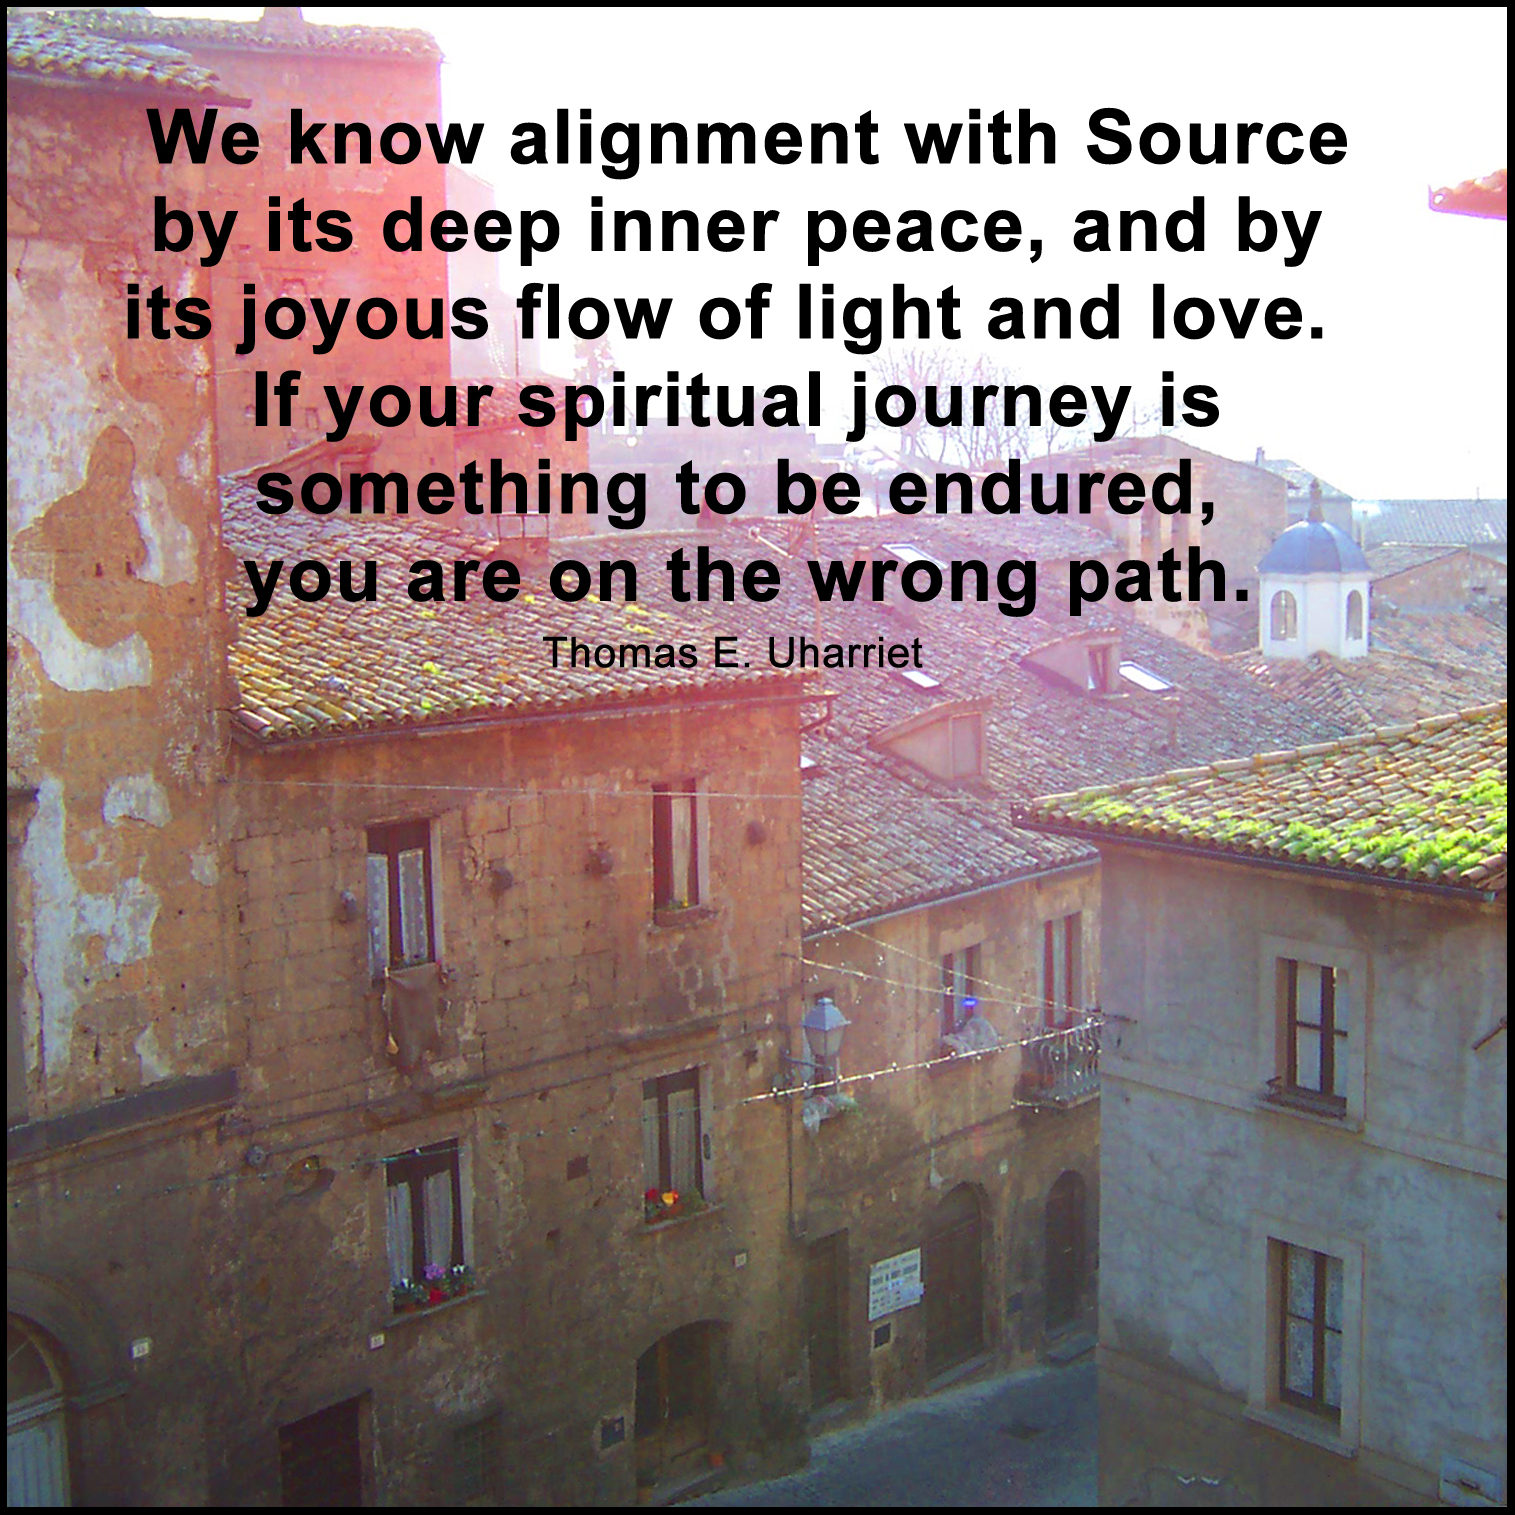 """We know alignment with Source by its deep inner peace, and by its joyous flow of light and love"" (Rev. Thomas E. Uharriet)."